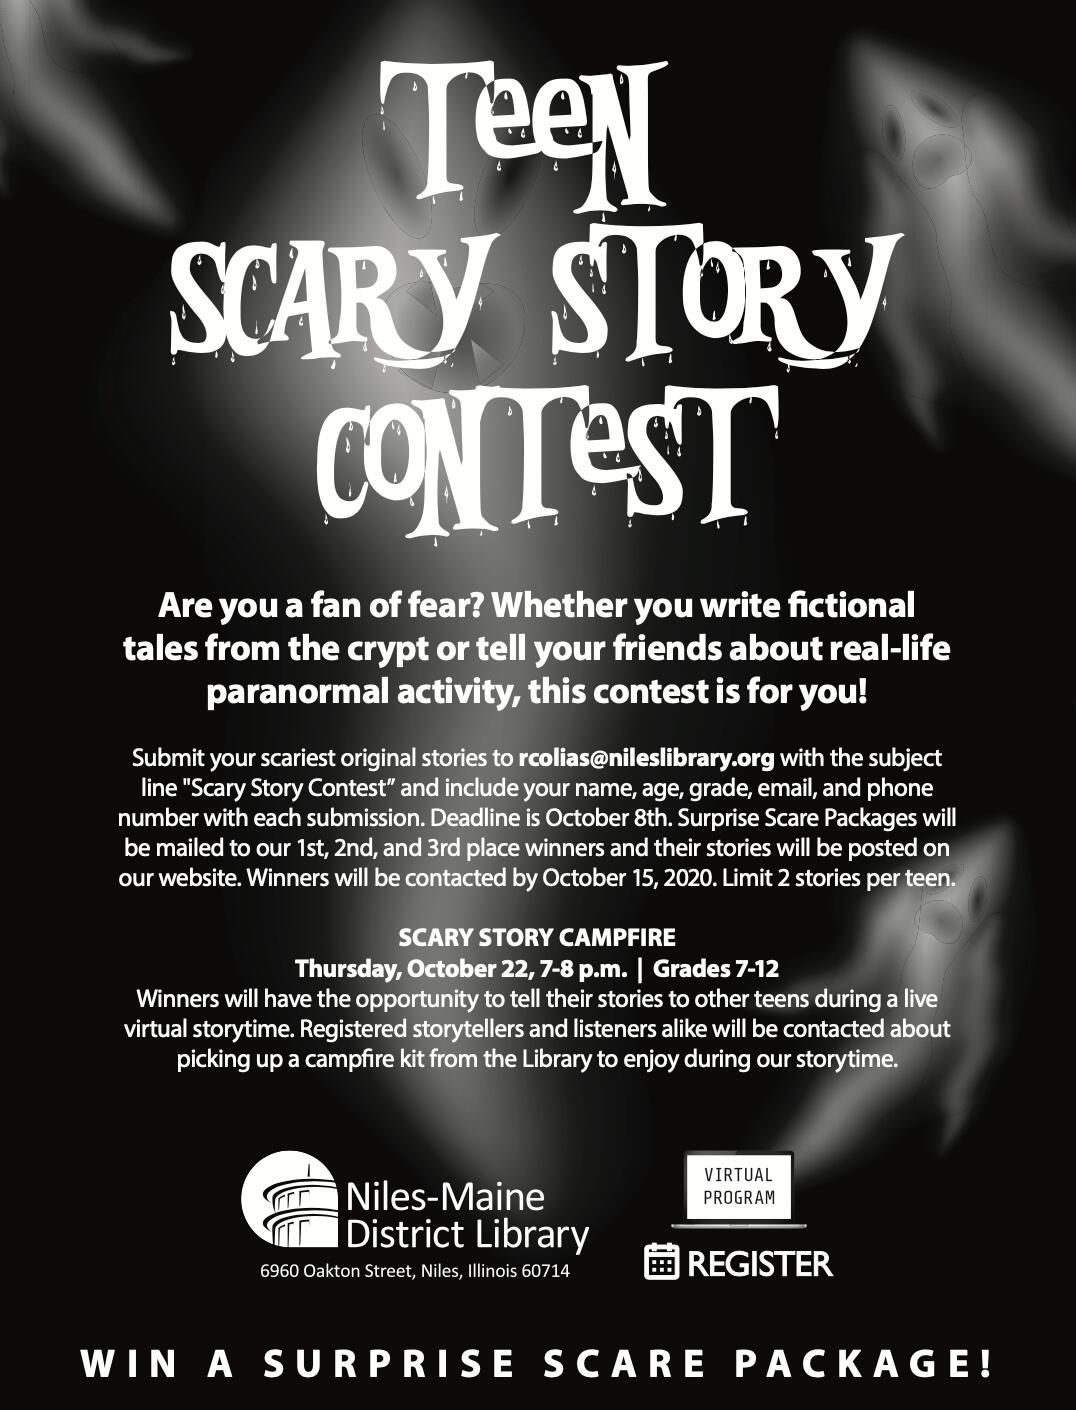 Teen Scary Story Contest at Niles-Maine District Library